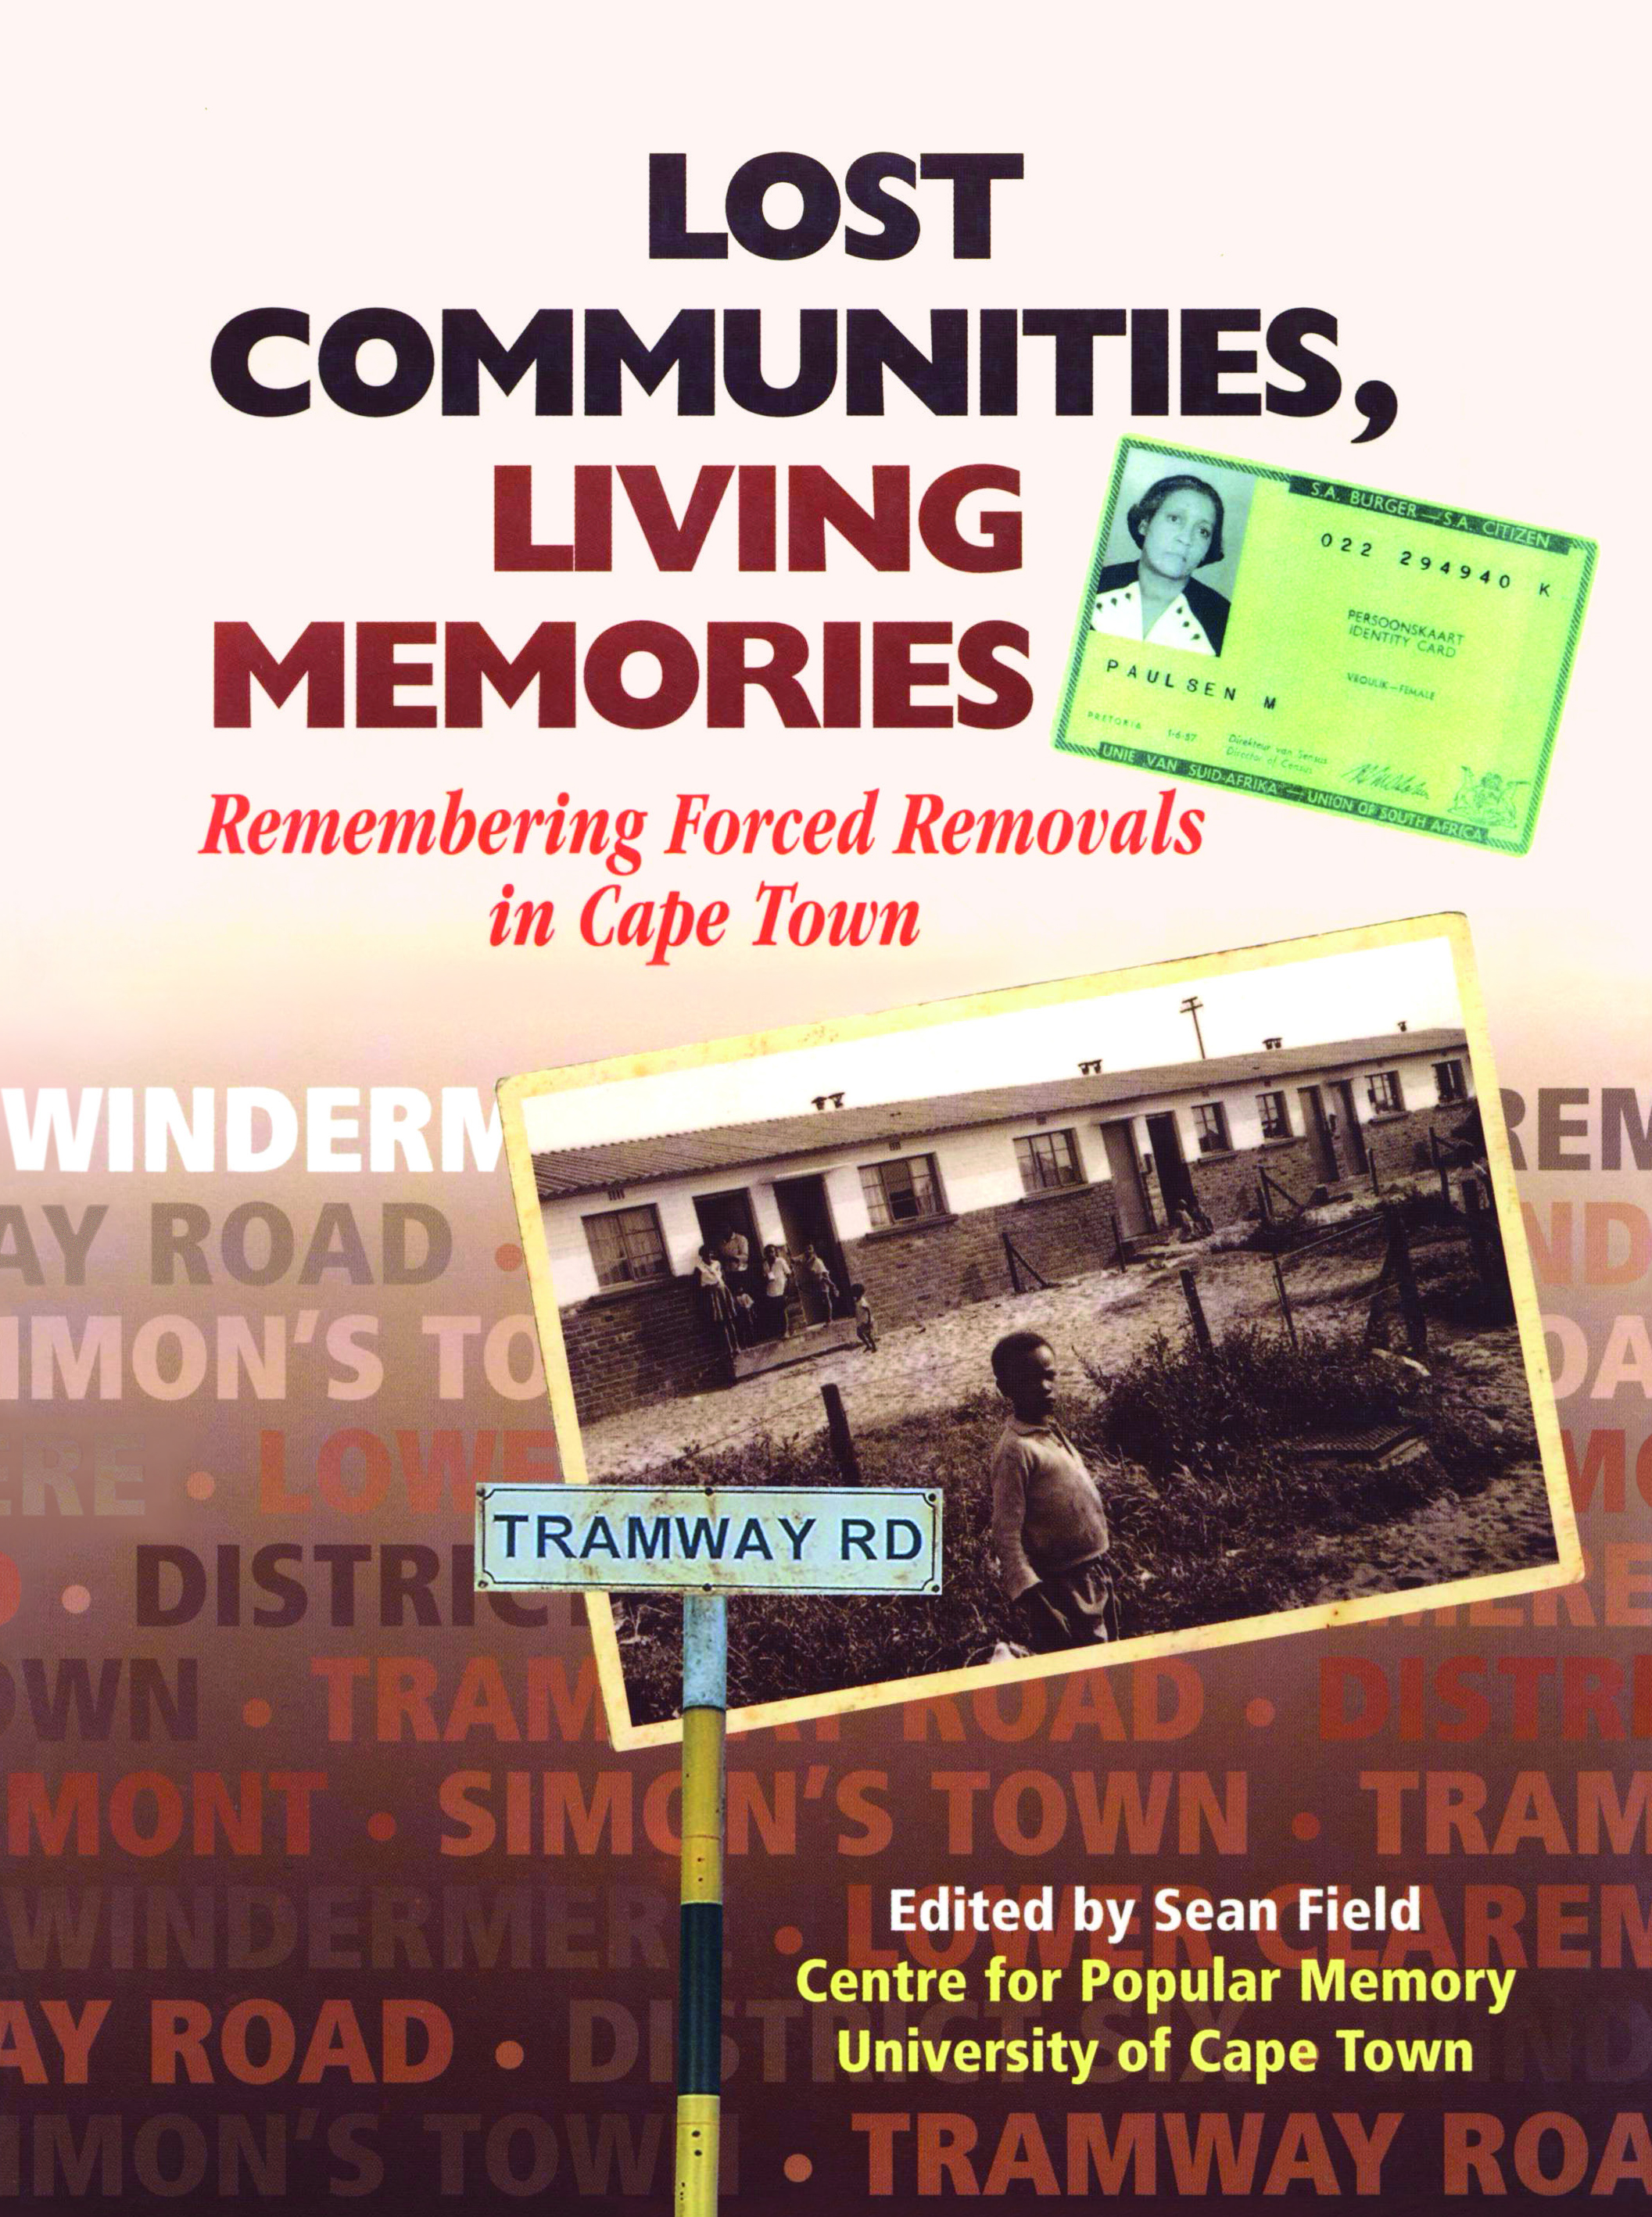 Lost Communities, Living Memories - Sean Field (editor)